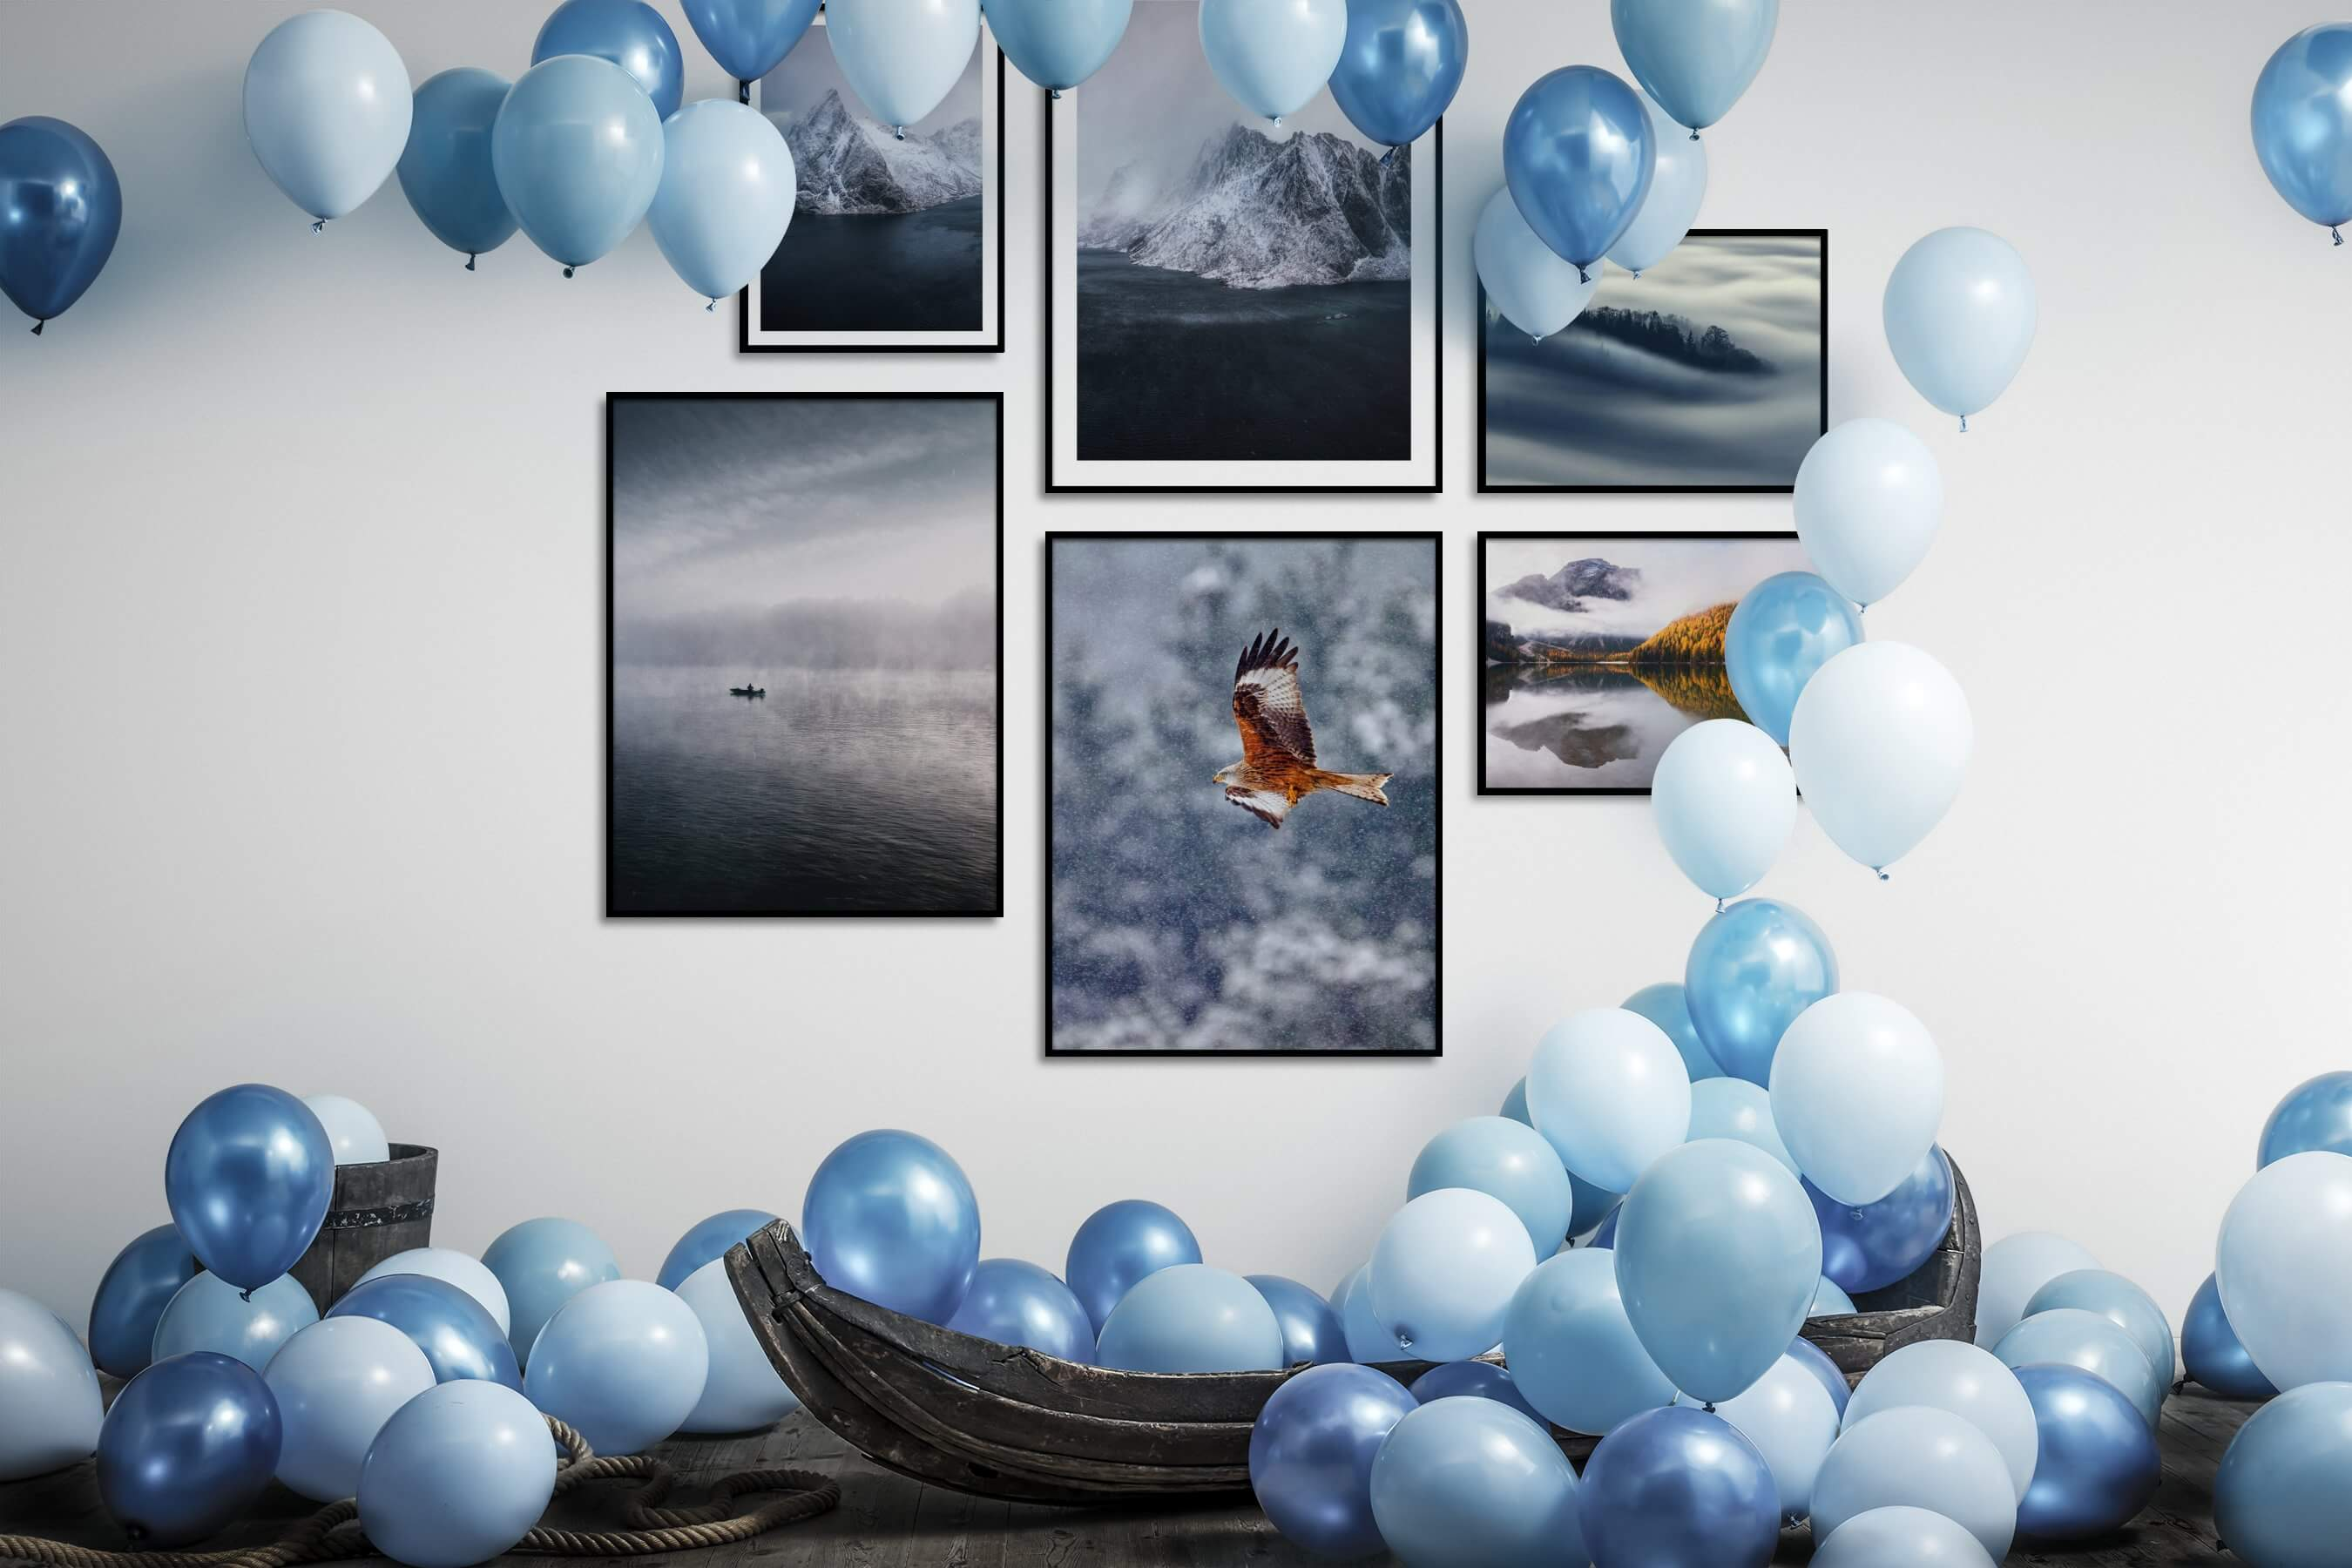 Gallery wall idea with six framed pictures arranged on a wall depicting Nature, For the Minimalist, Beach & Water, Mindfulness, Animals, and For the Moderate